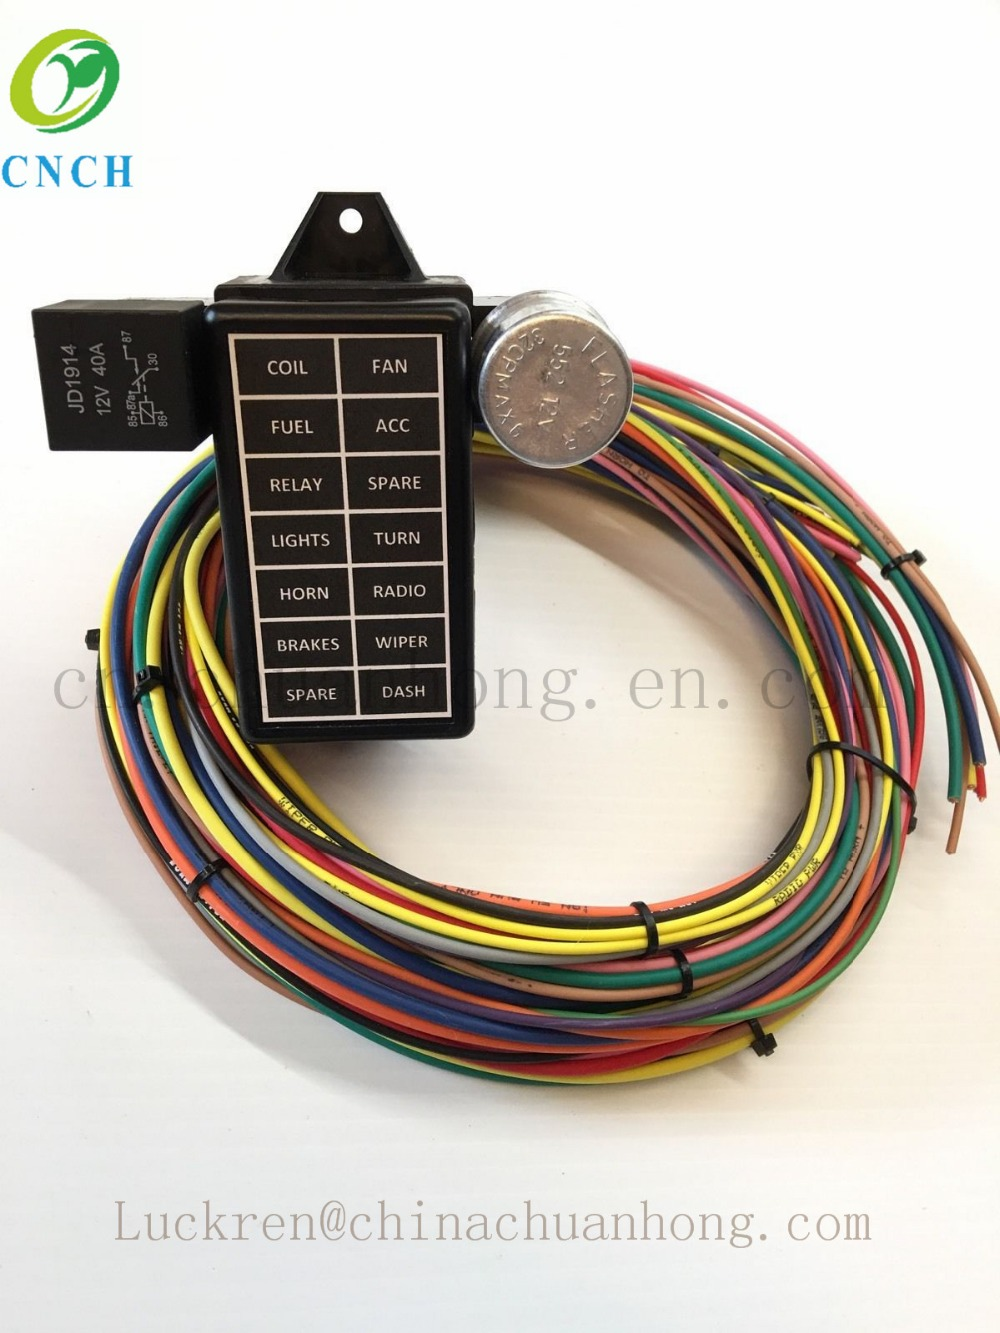 CNCH 12 Circuit 14 Fuse Universal Street Rod Wiring Harness aliexpress com buy cnch 12 circuit 14 fuse universal street rod street rod universal 14 fuse 12-14 circuit wire harness at bayanpartner.co